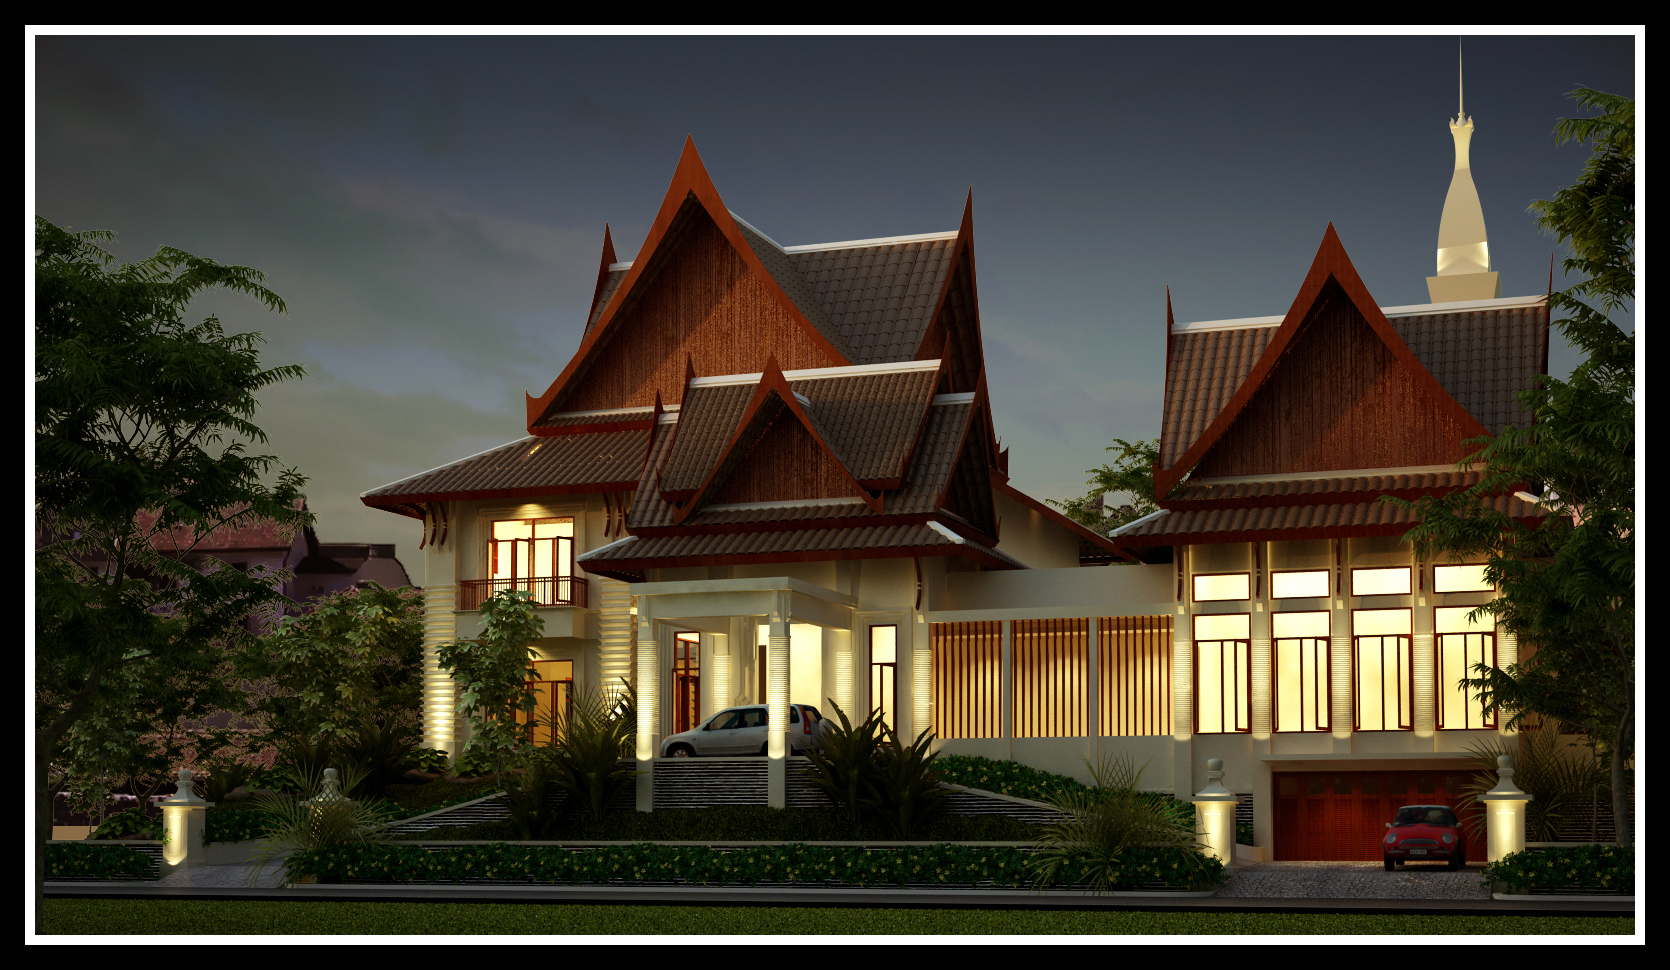 Thai modern by r3ynard on deviantart for Thai style house design